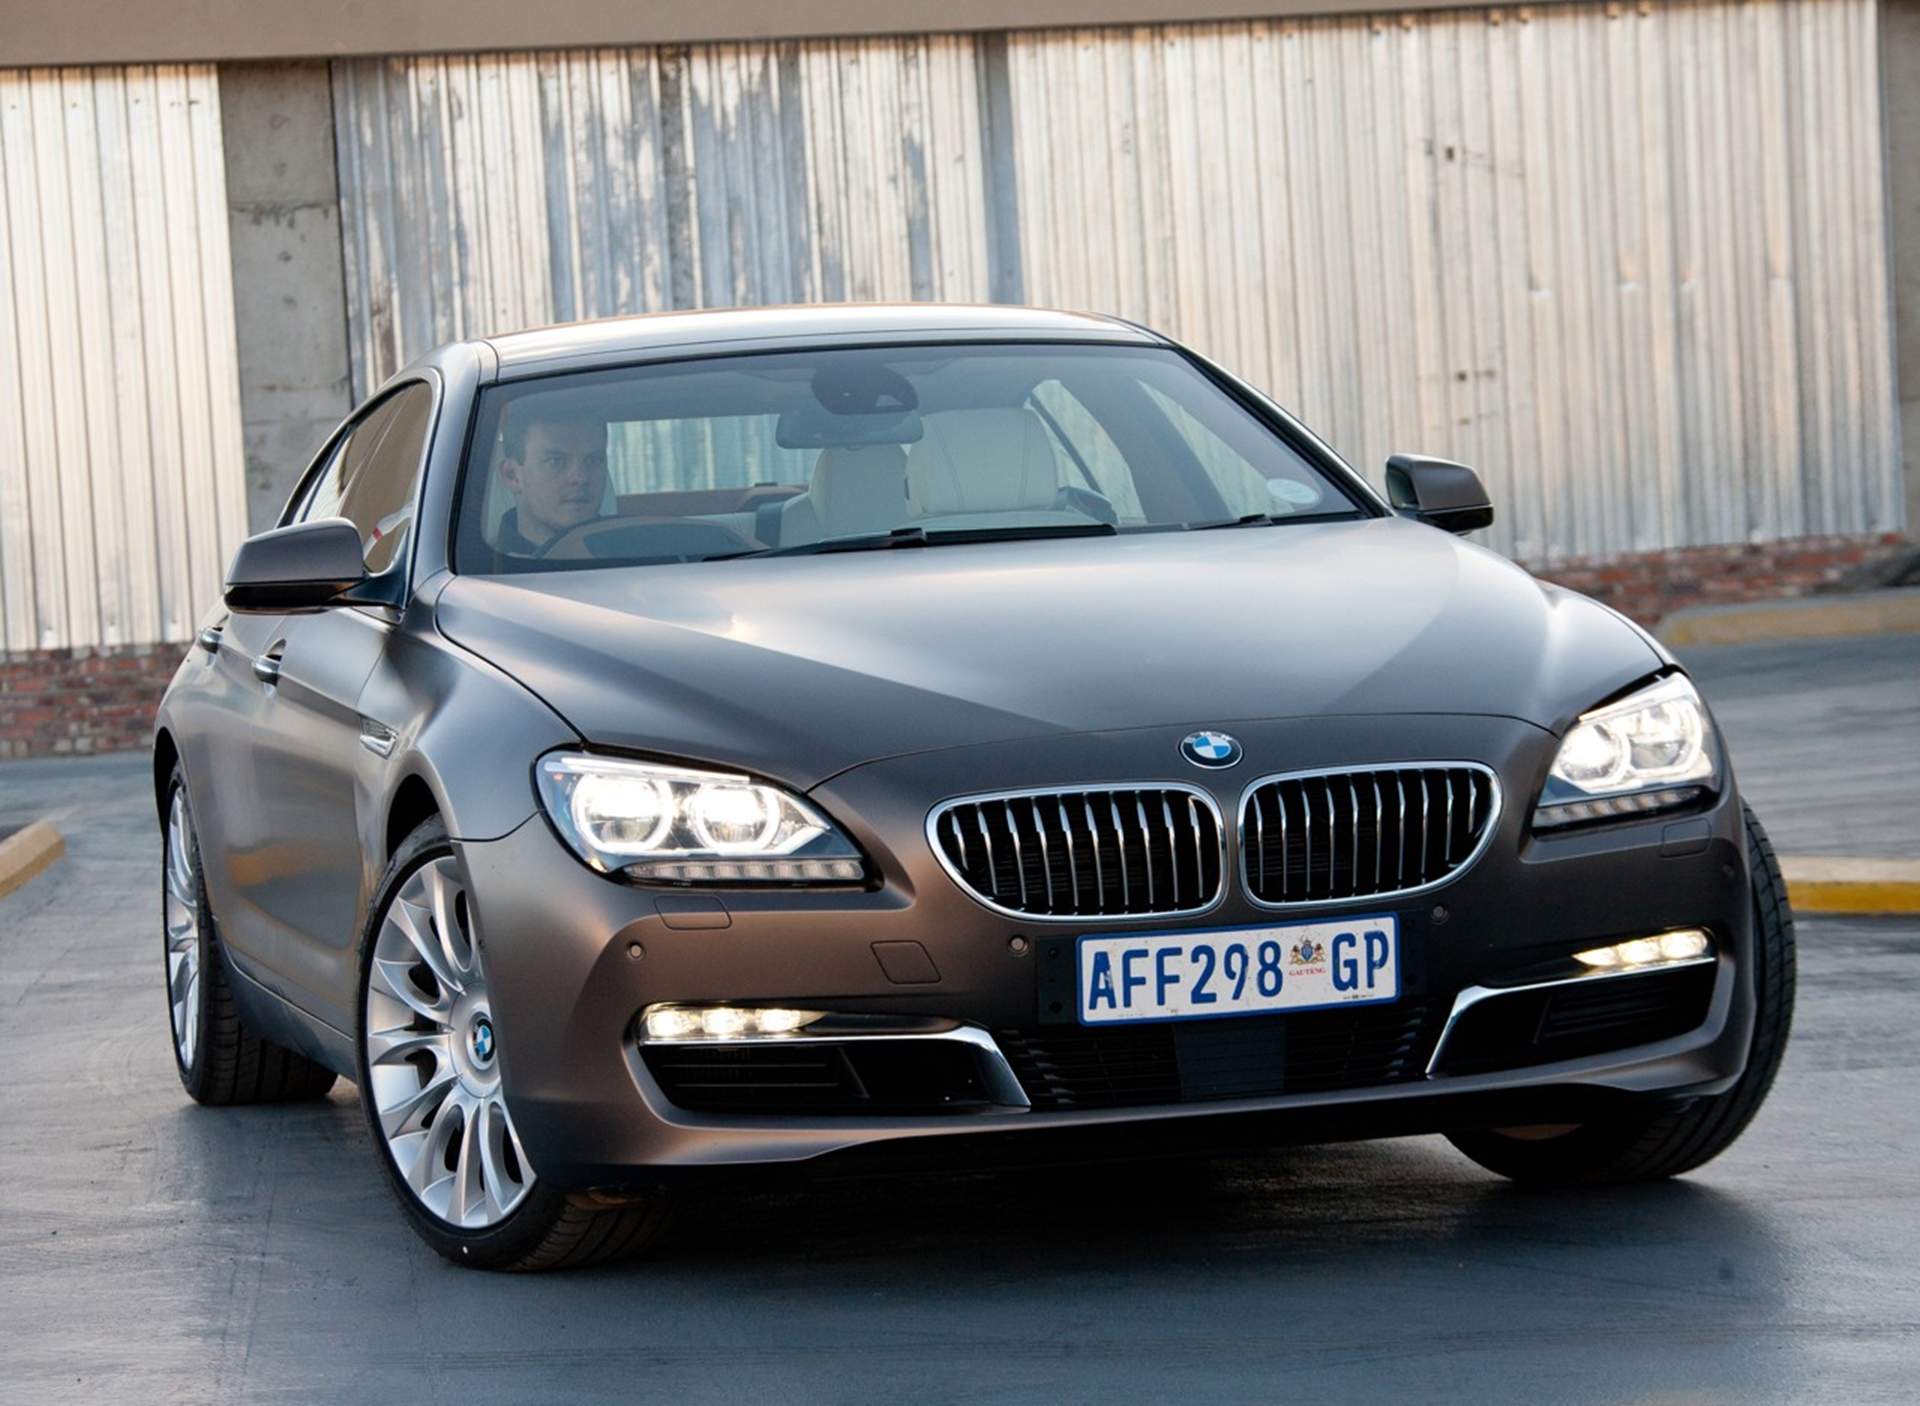 BMW 6 Gran Coupe image